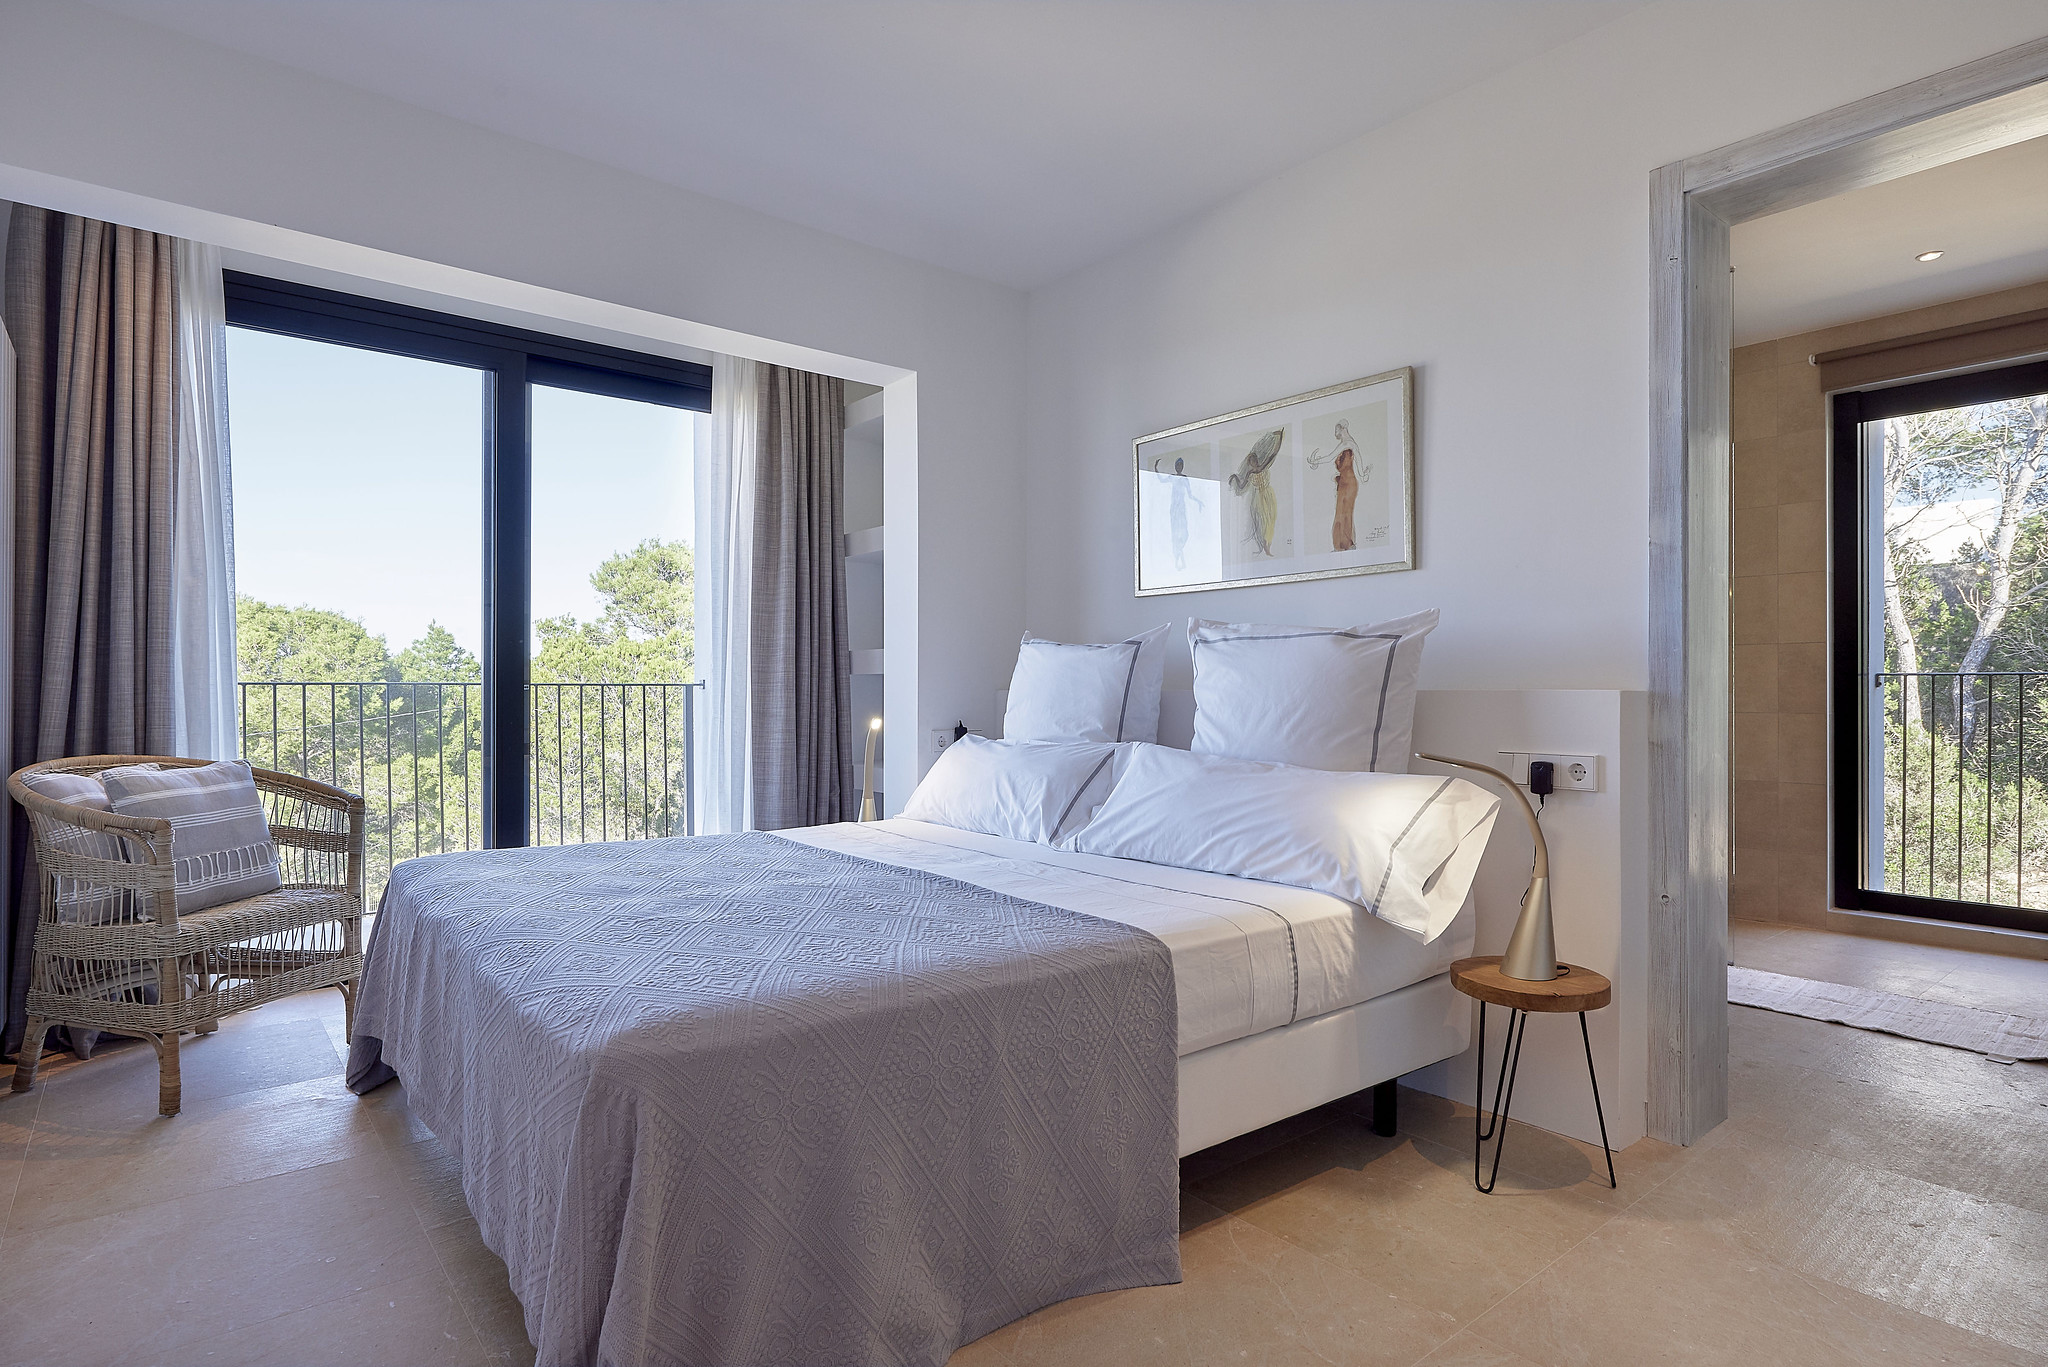 https://www.white-ibiza.com/wp-content/uploads/2020/06/white-ibiza-villas-sa-serra-interior-bedroom6.jpg